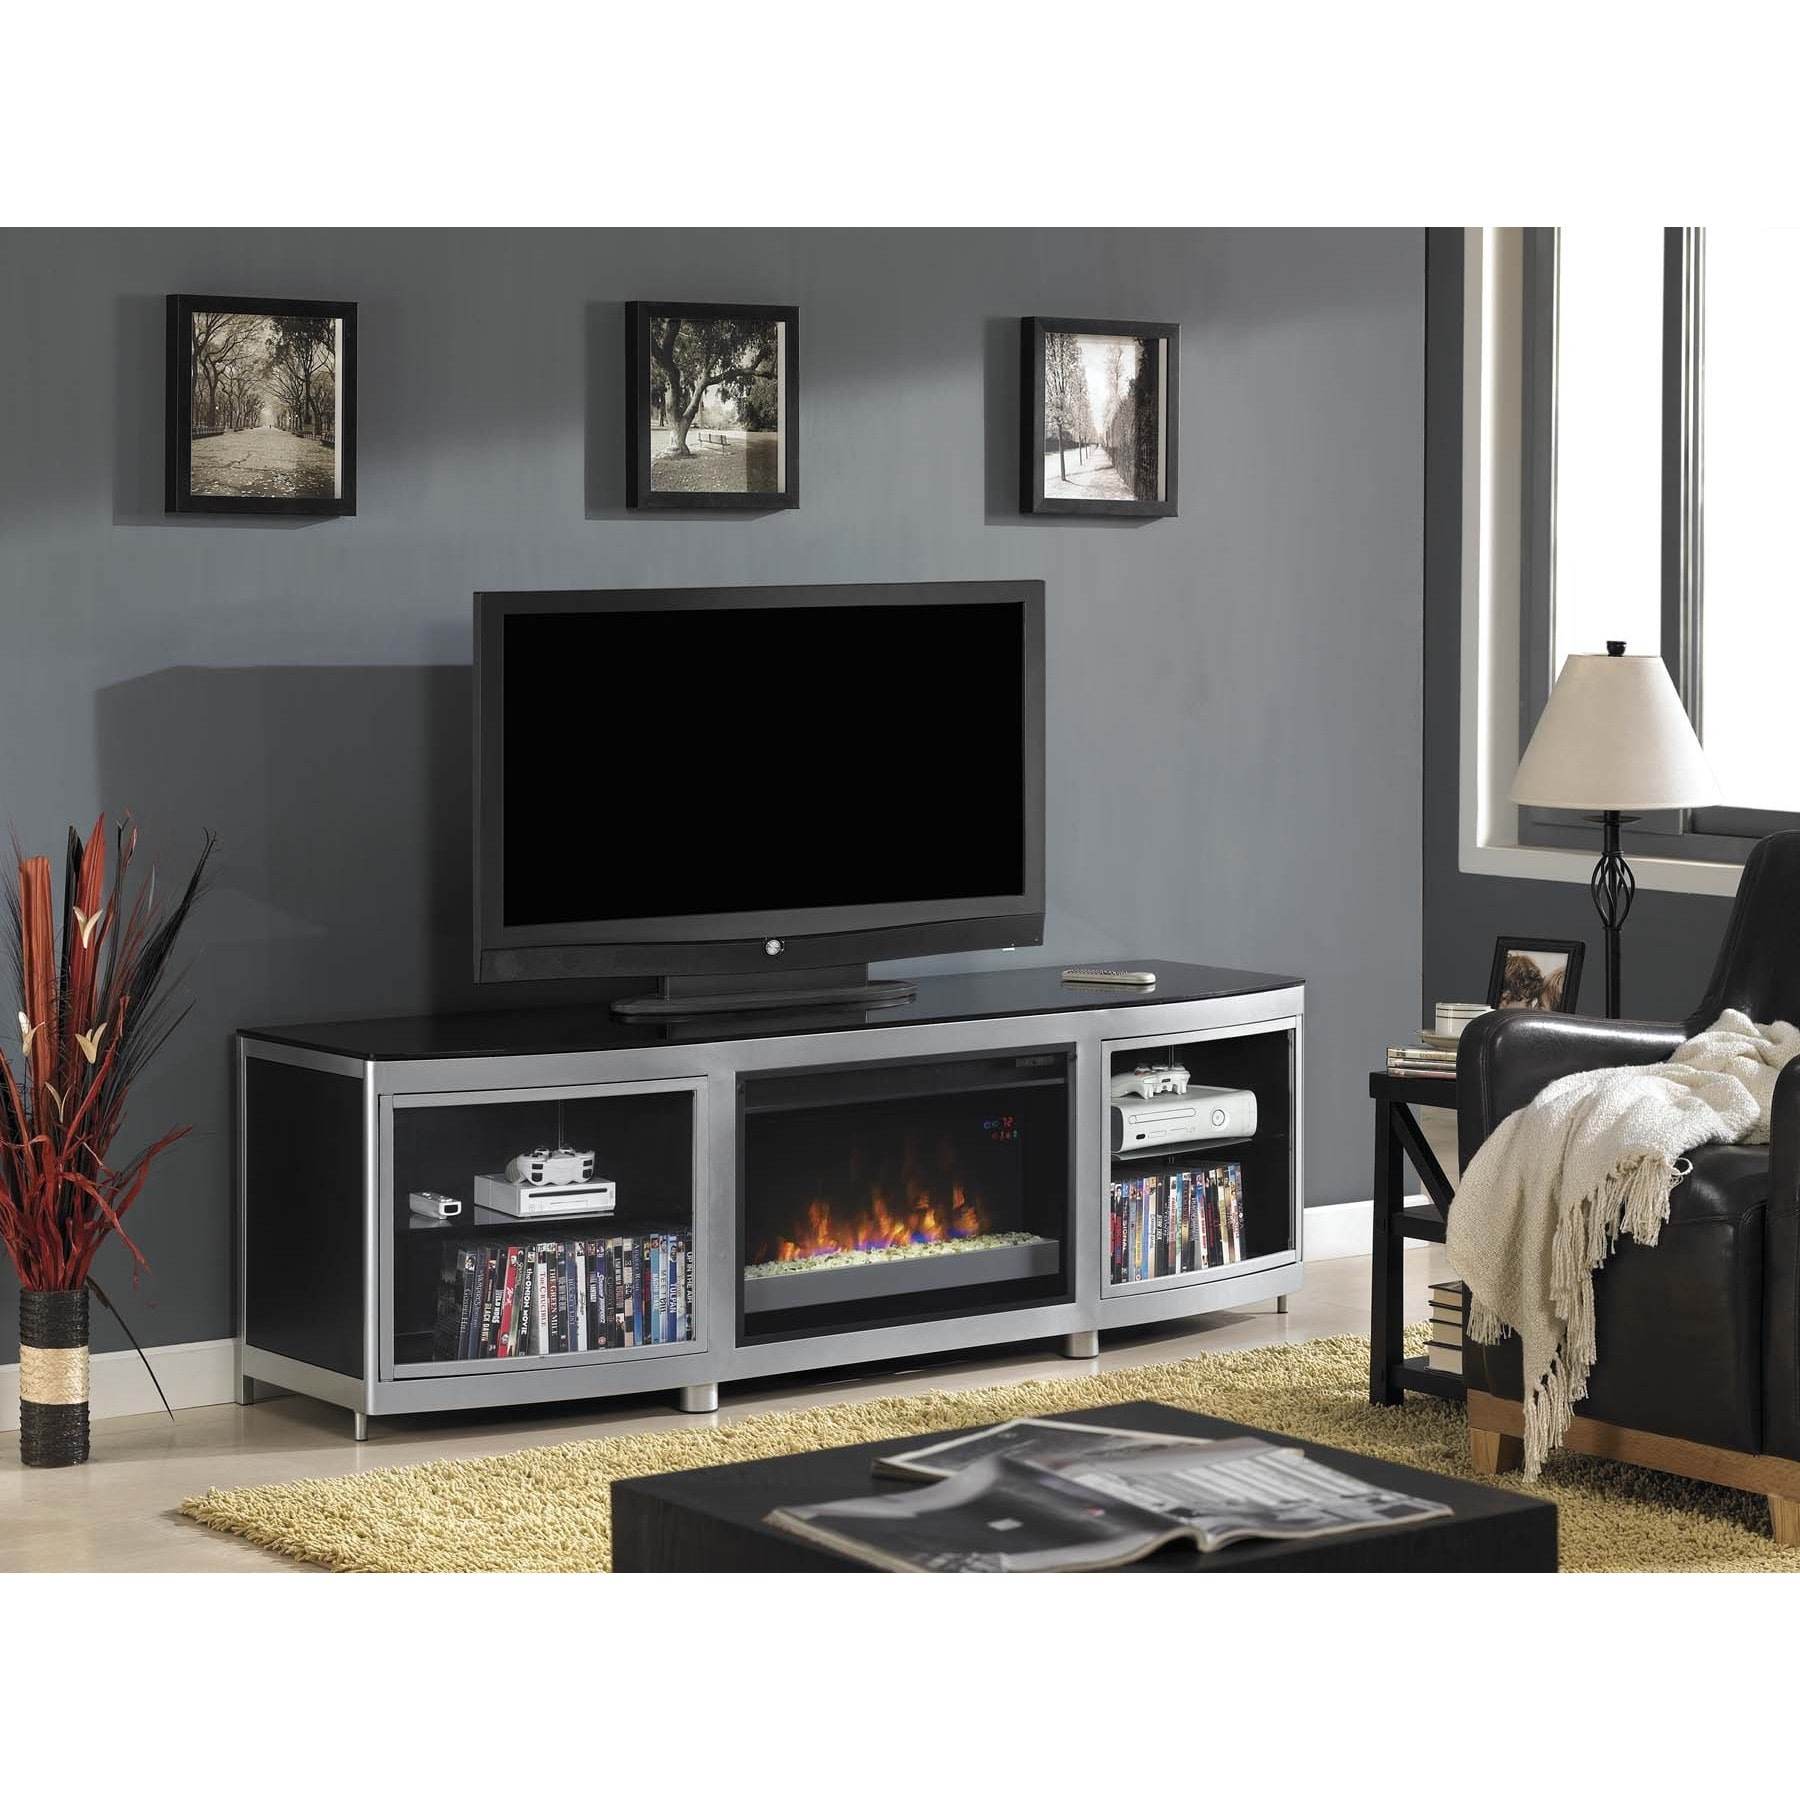 Twin Star Int Gotham Tv Stand For Tvs Up To 80 Inch With Intended For Baby Proof Contemporary Tv Cabinets (View 1 of 15)